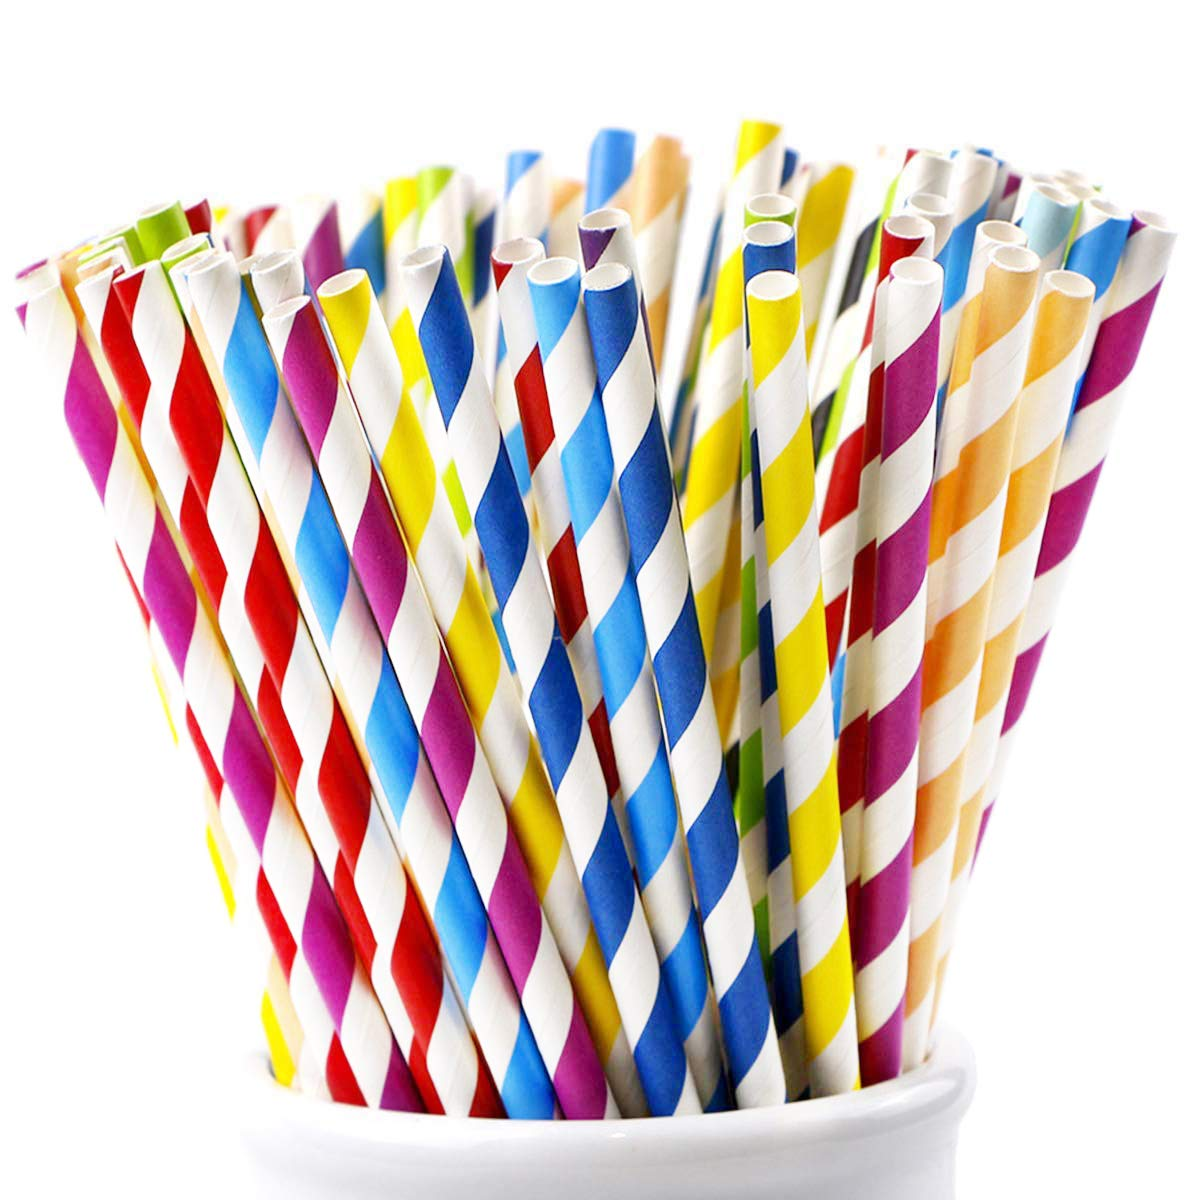 Webake Paper Straws Biodegradable Bulk 175 Pack Rainbow Striped Drinking Straws, Eco Friendly Straw Christmas Decorations for Party, Cake Topper, Cake Pop Sticks, DIY (Assorted Colors)